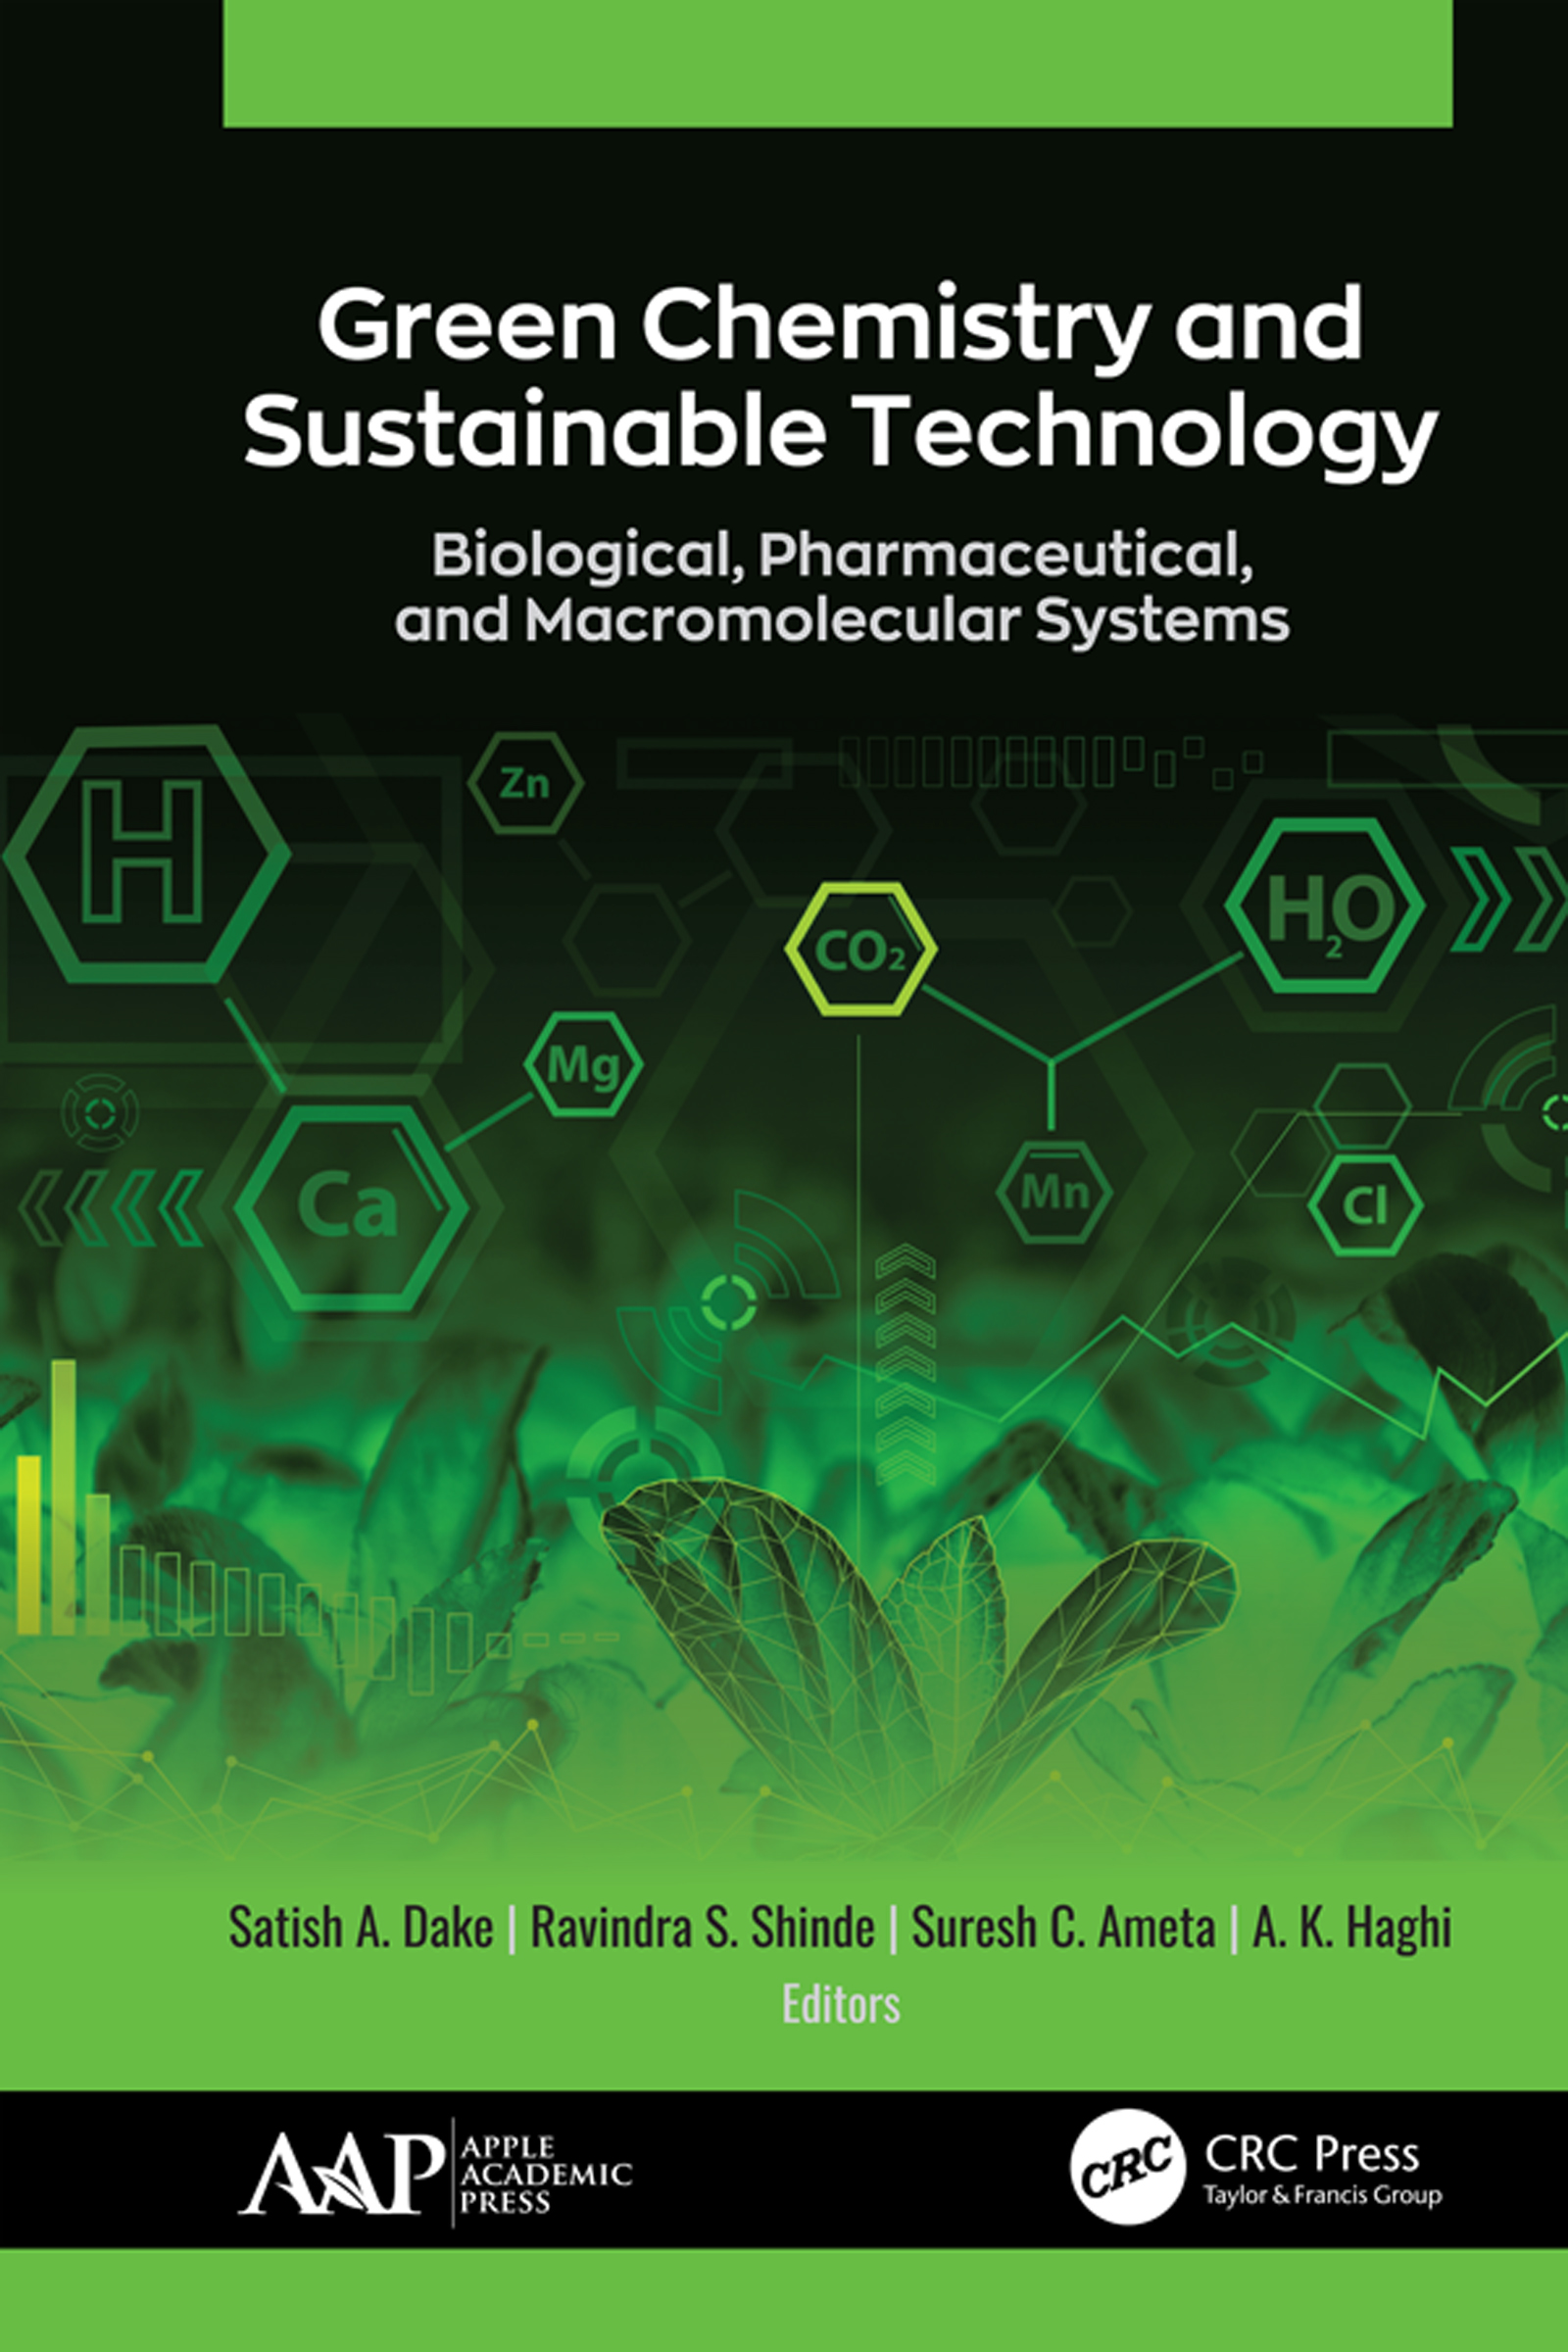 Green Chemistry and Sustainable Technology